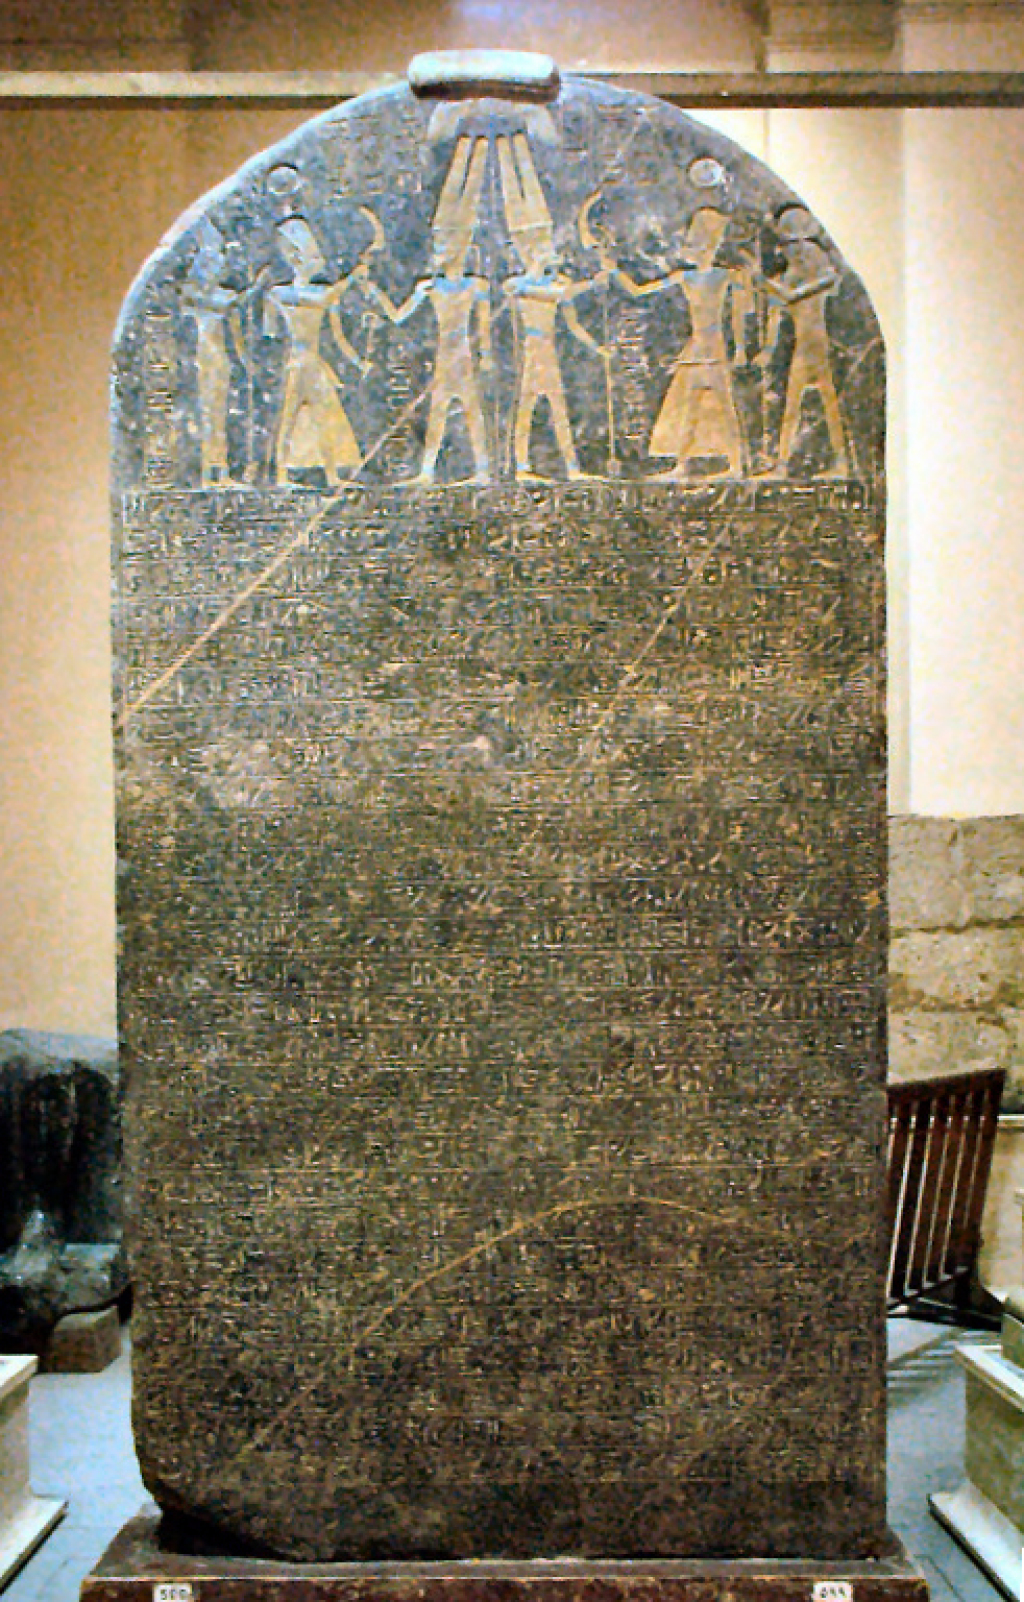 Merneptah Stele: Proving Israel's 3,200-Year Existence - Watch ...